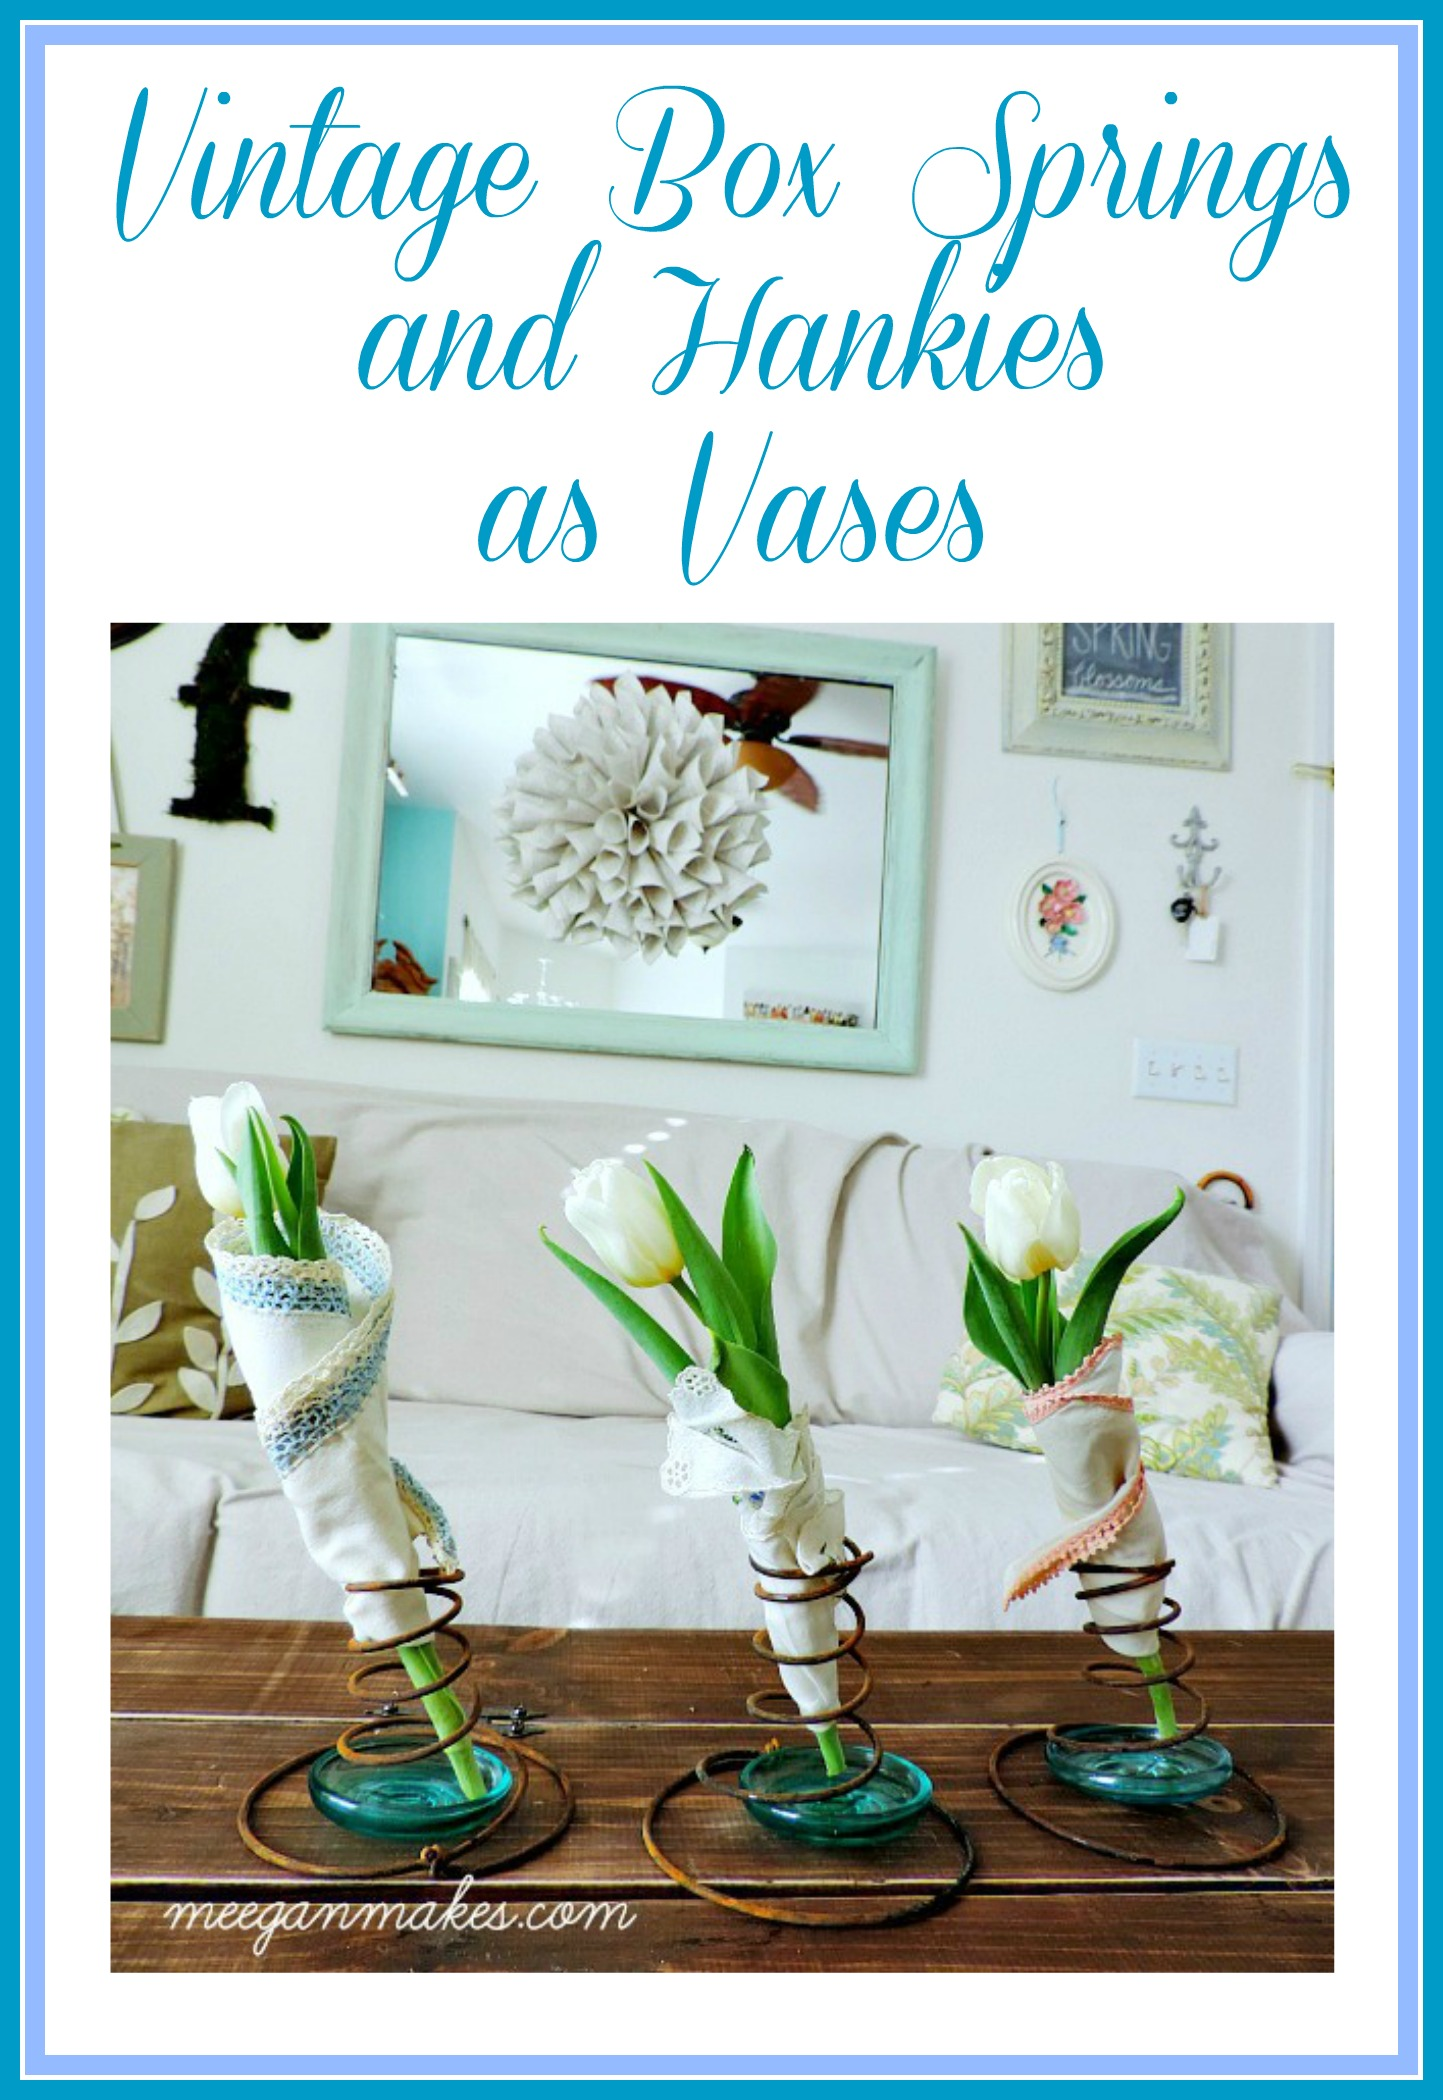 Vintage Box Springs and Hankies as Vases